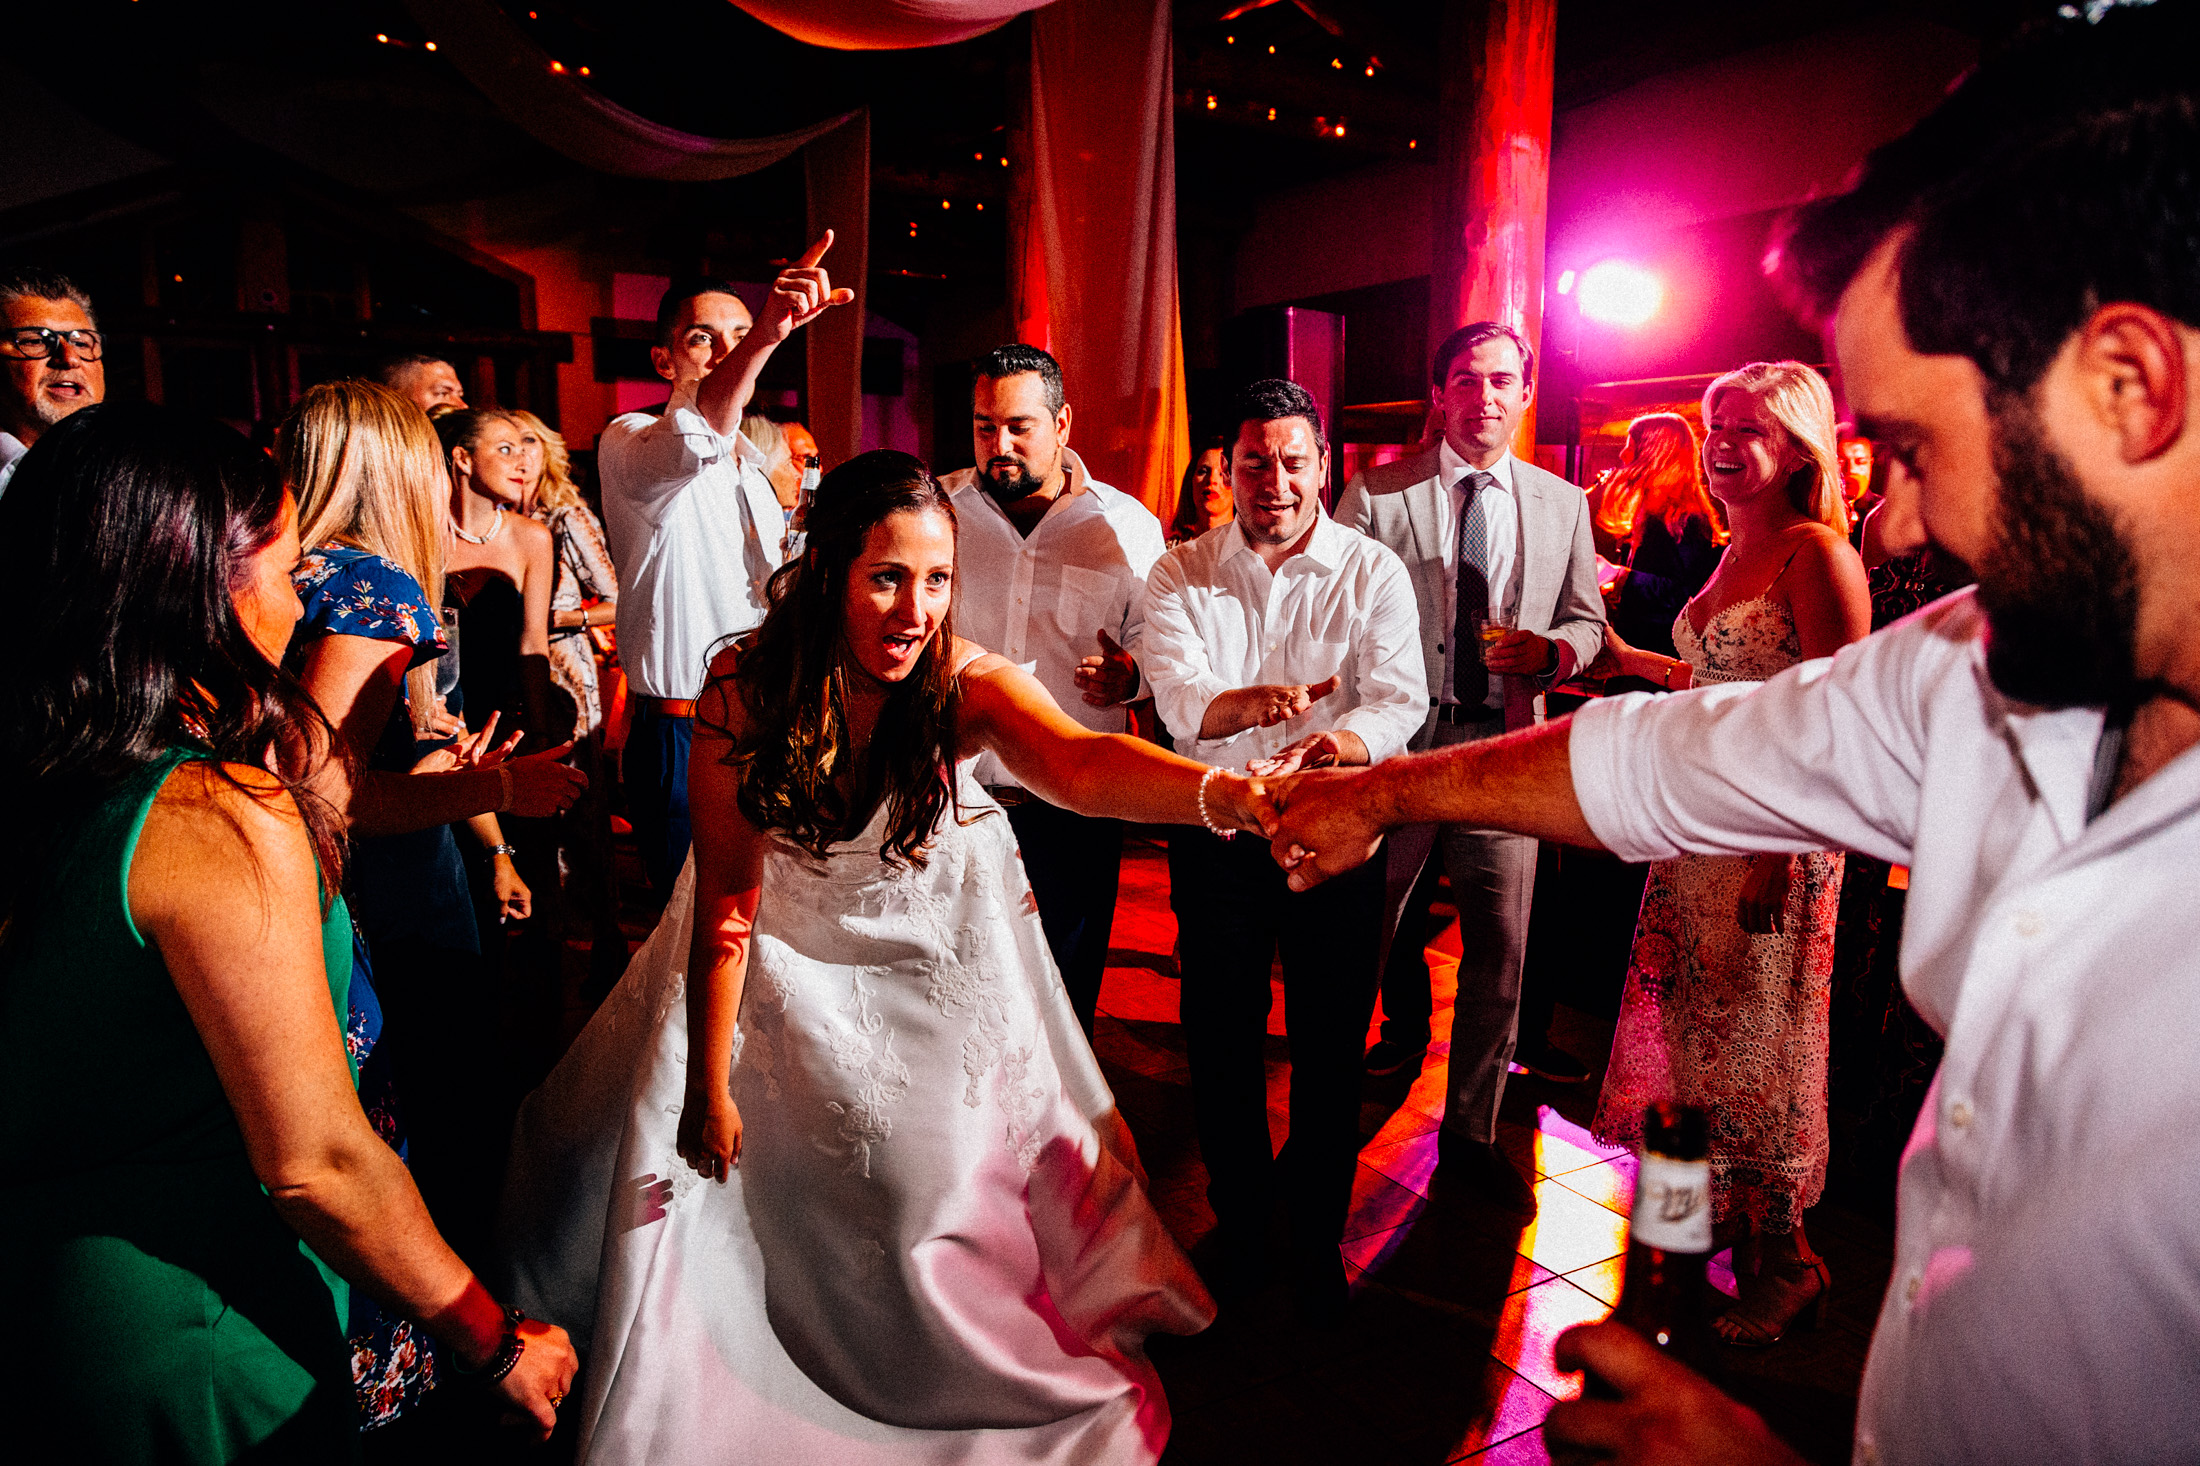 Bride dances with groom during wedding reception inside Timber Ridge Lodge.